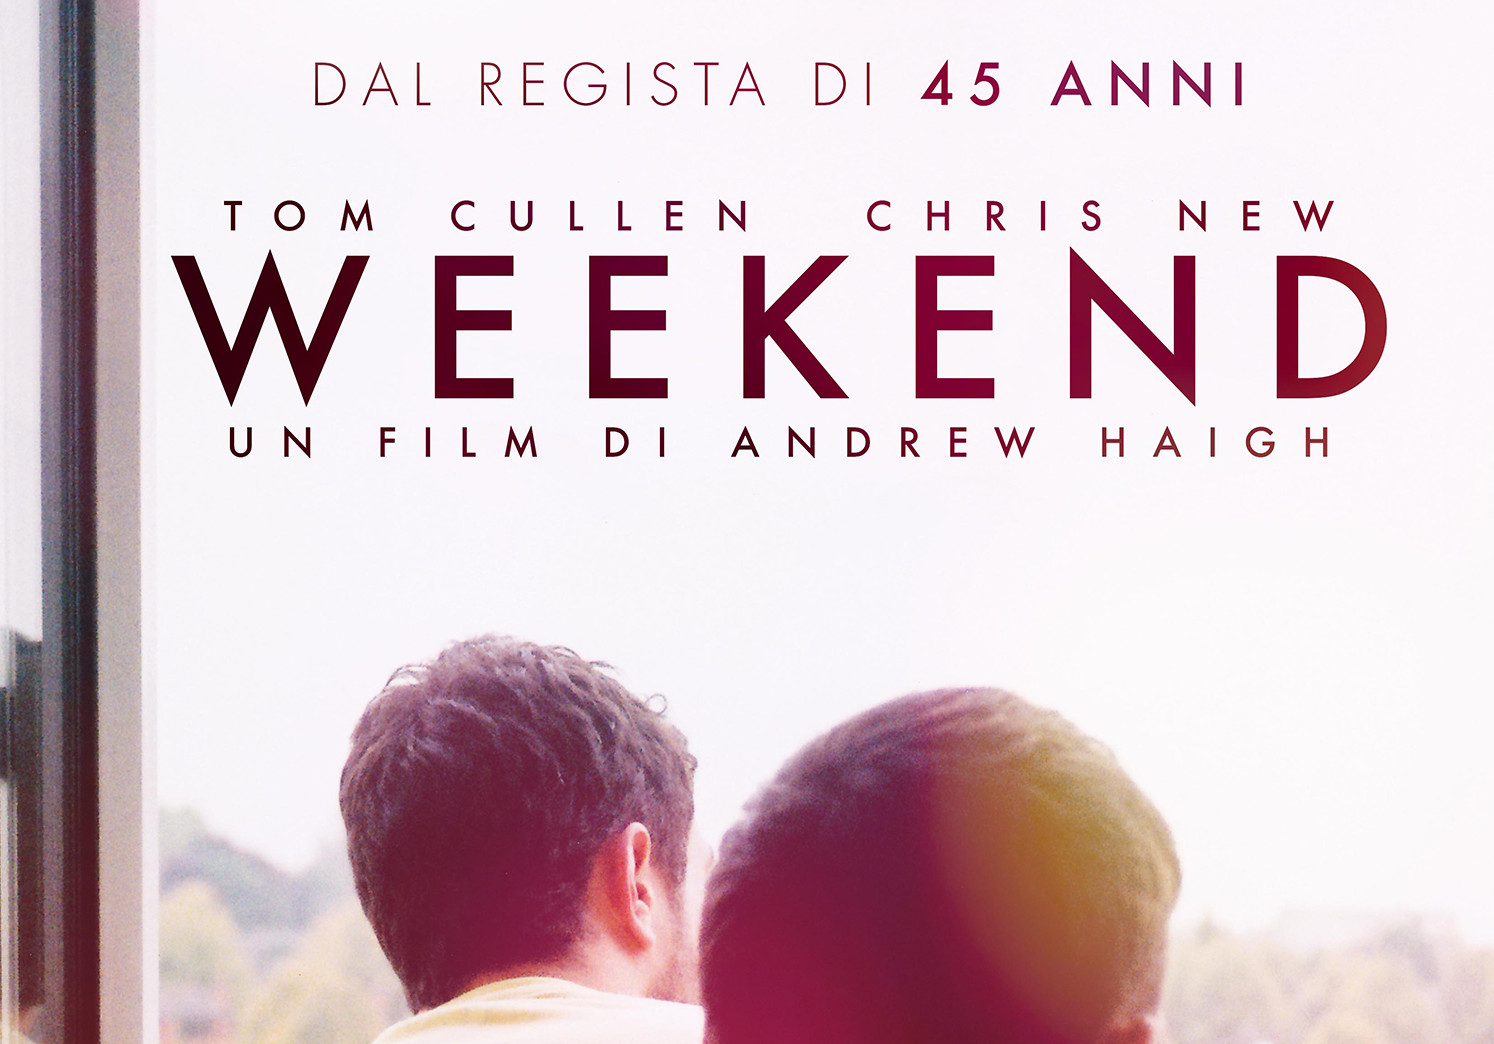 WEEKEND esce in 10 cinema in tutta Italia